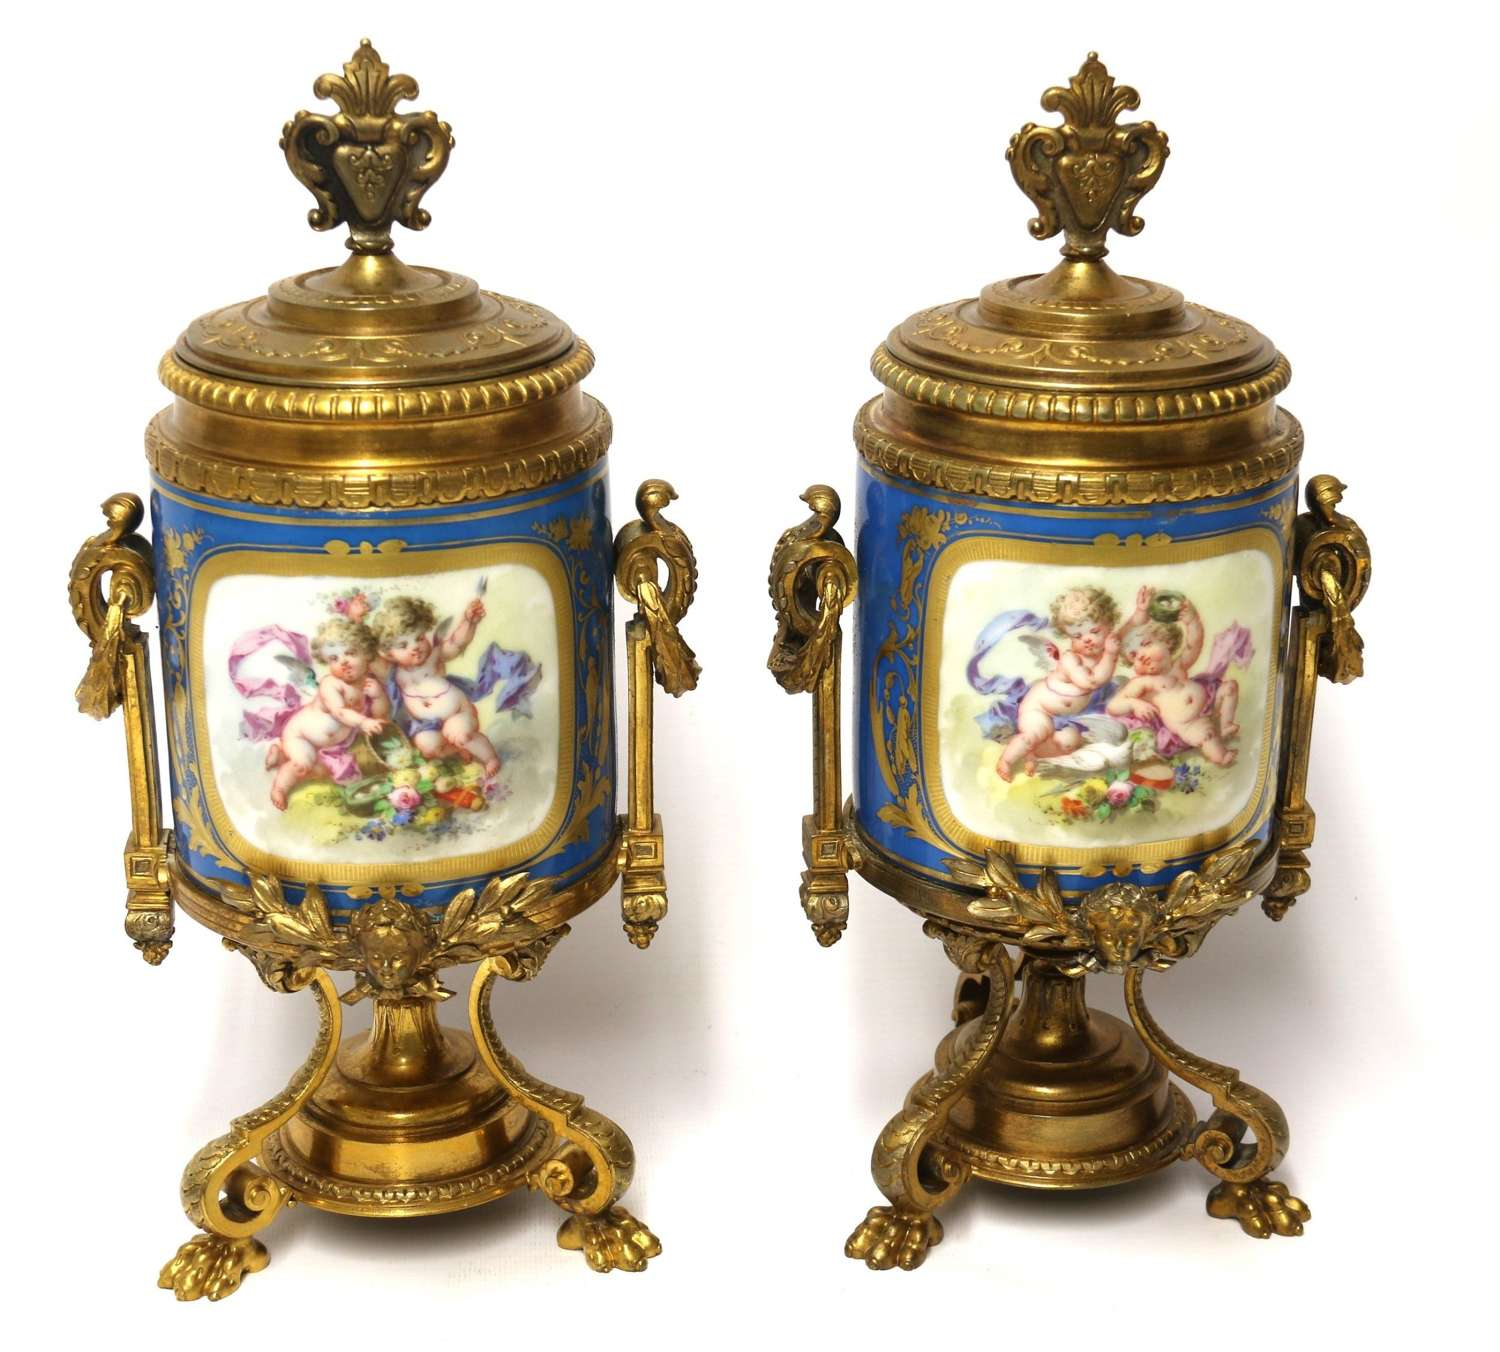 A Fine 19th Century Pair Of French Sevres Style Porcelain And Ormolu Vases.